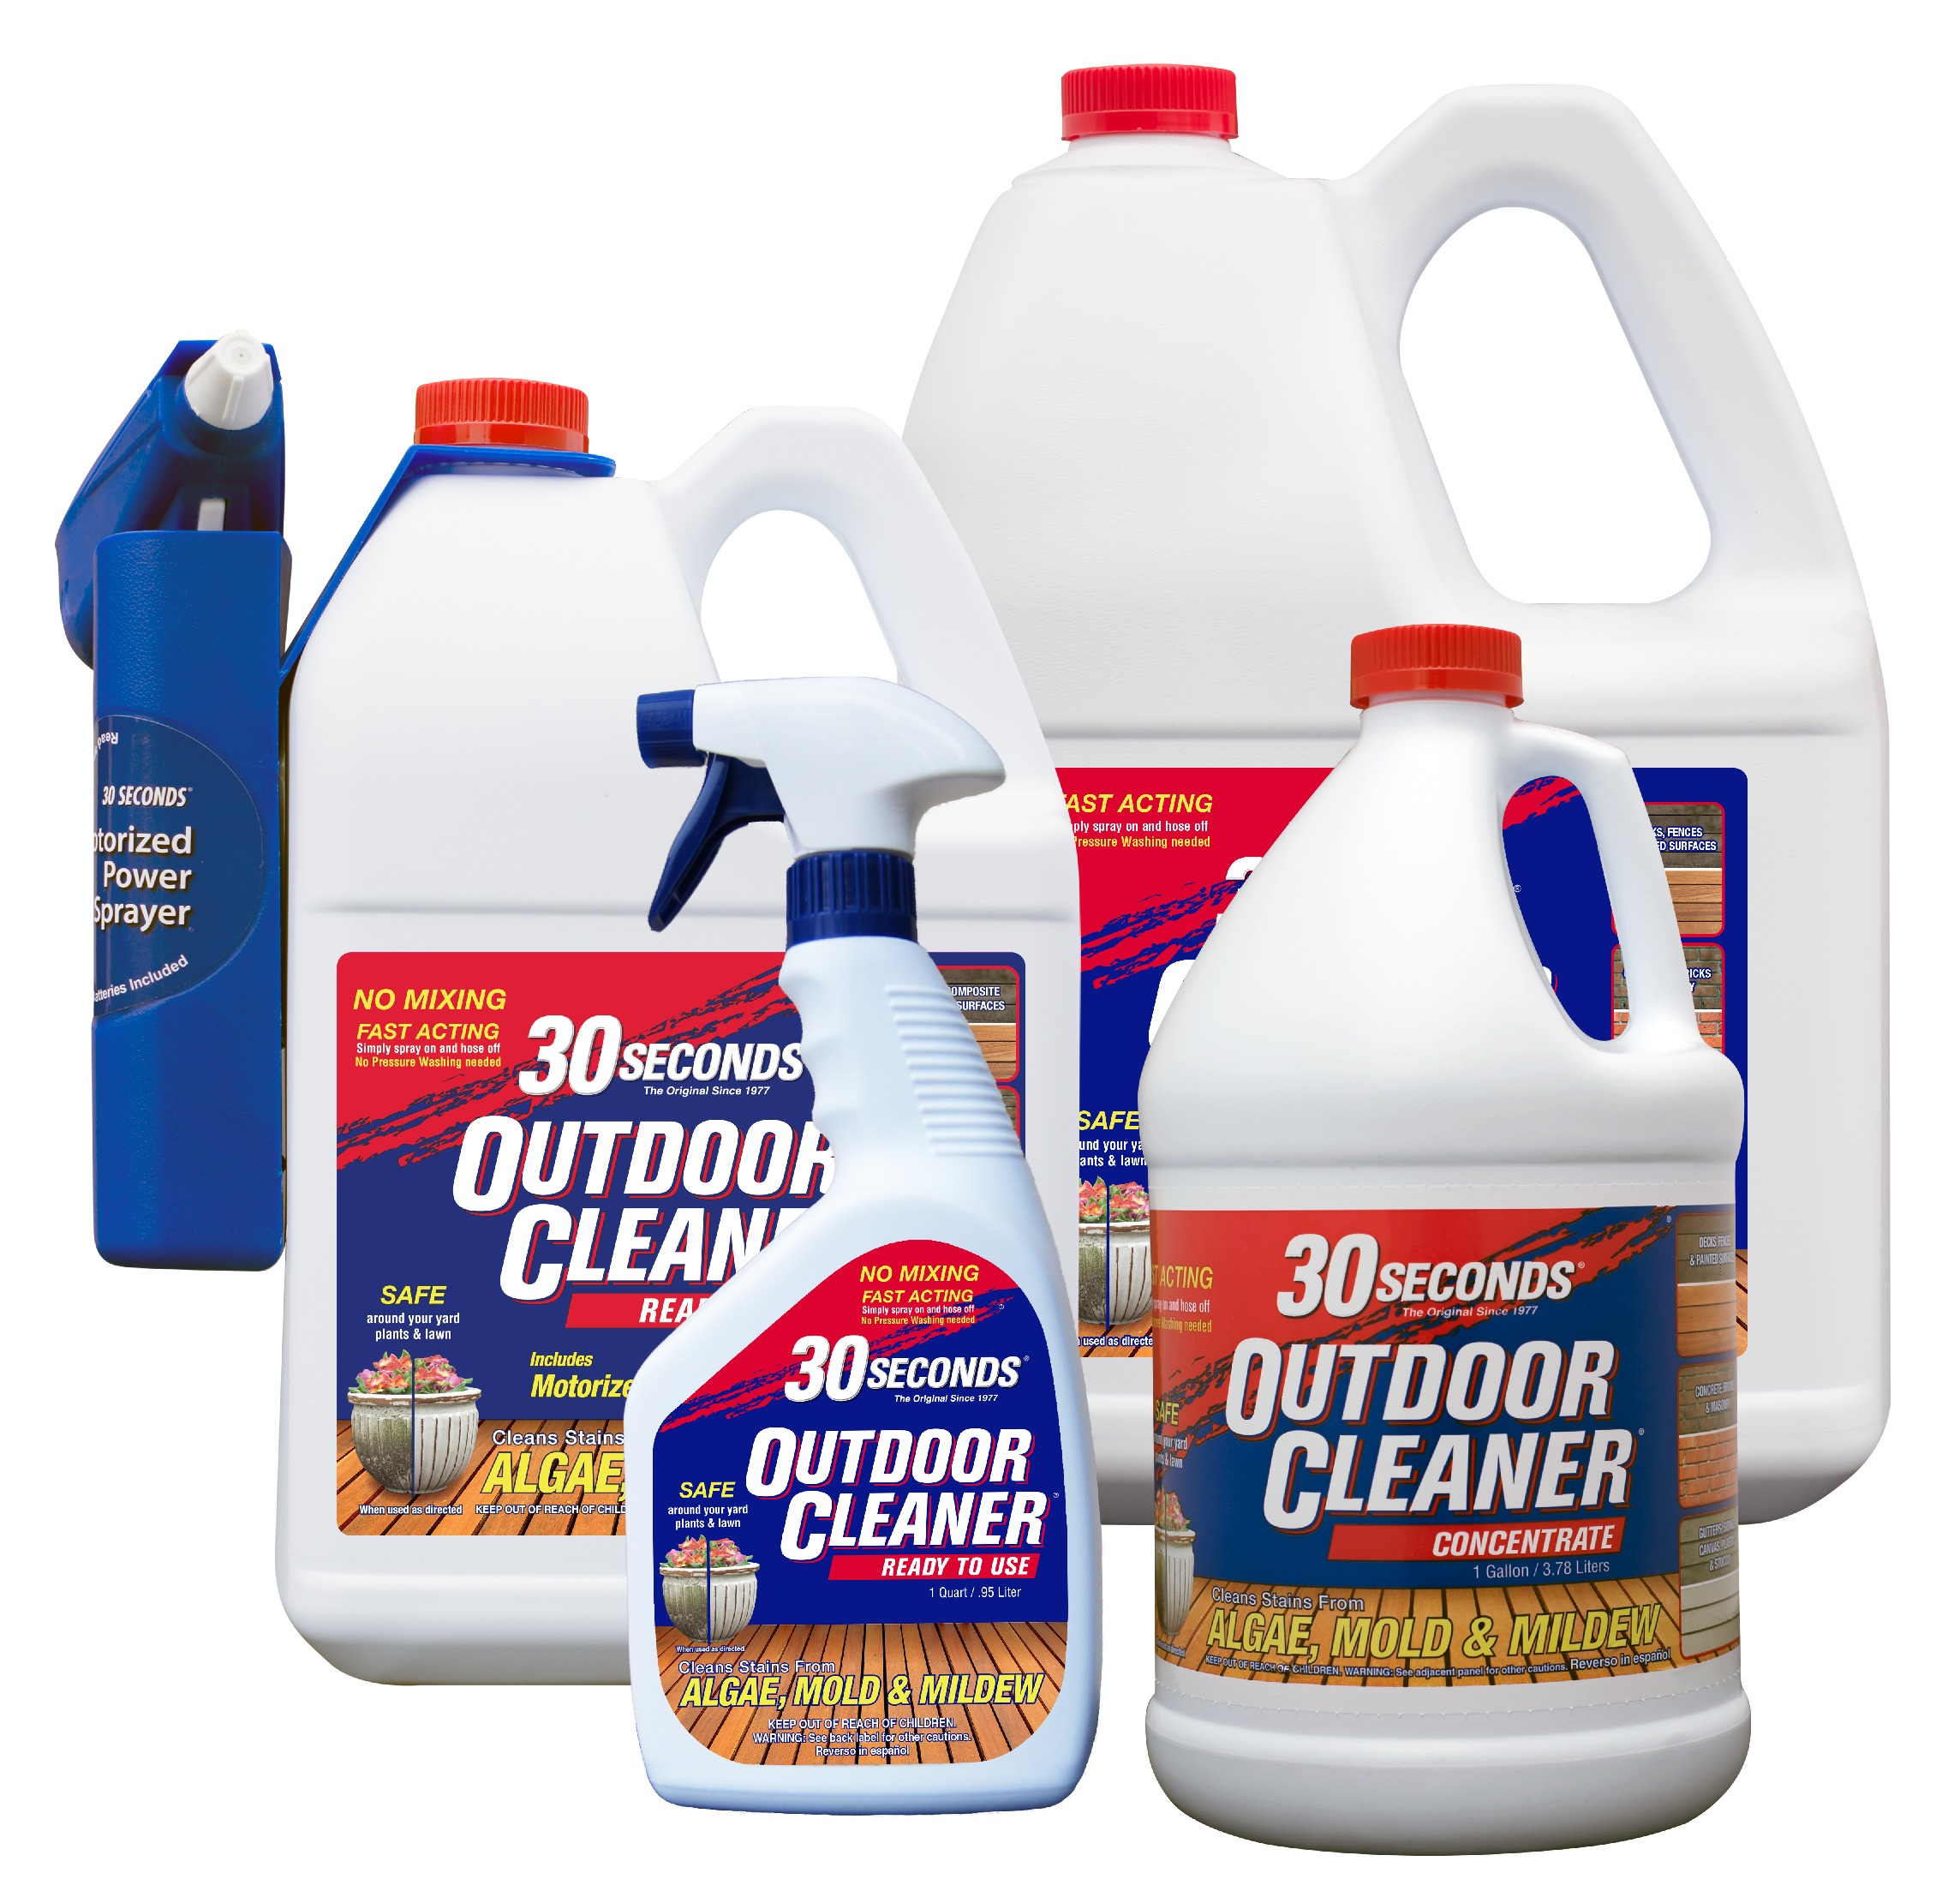 30 Seconds Outdoor Cleaner 2 5 Gallon Concentrate